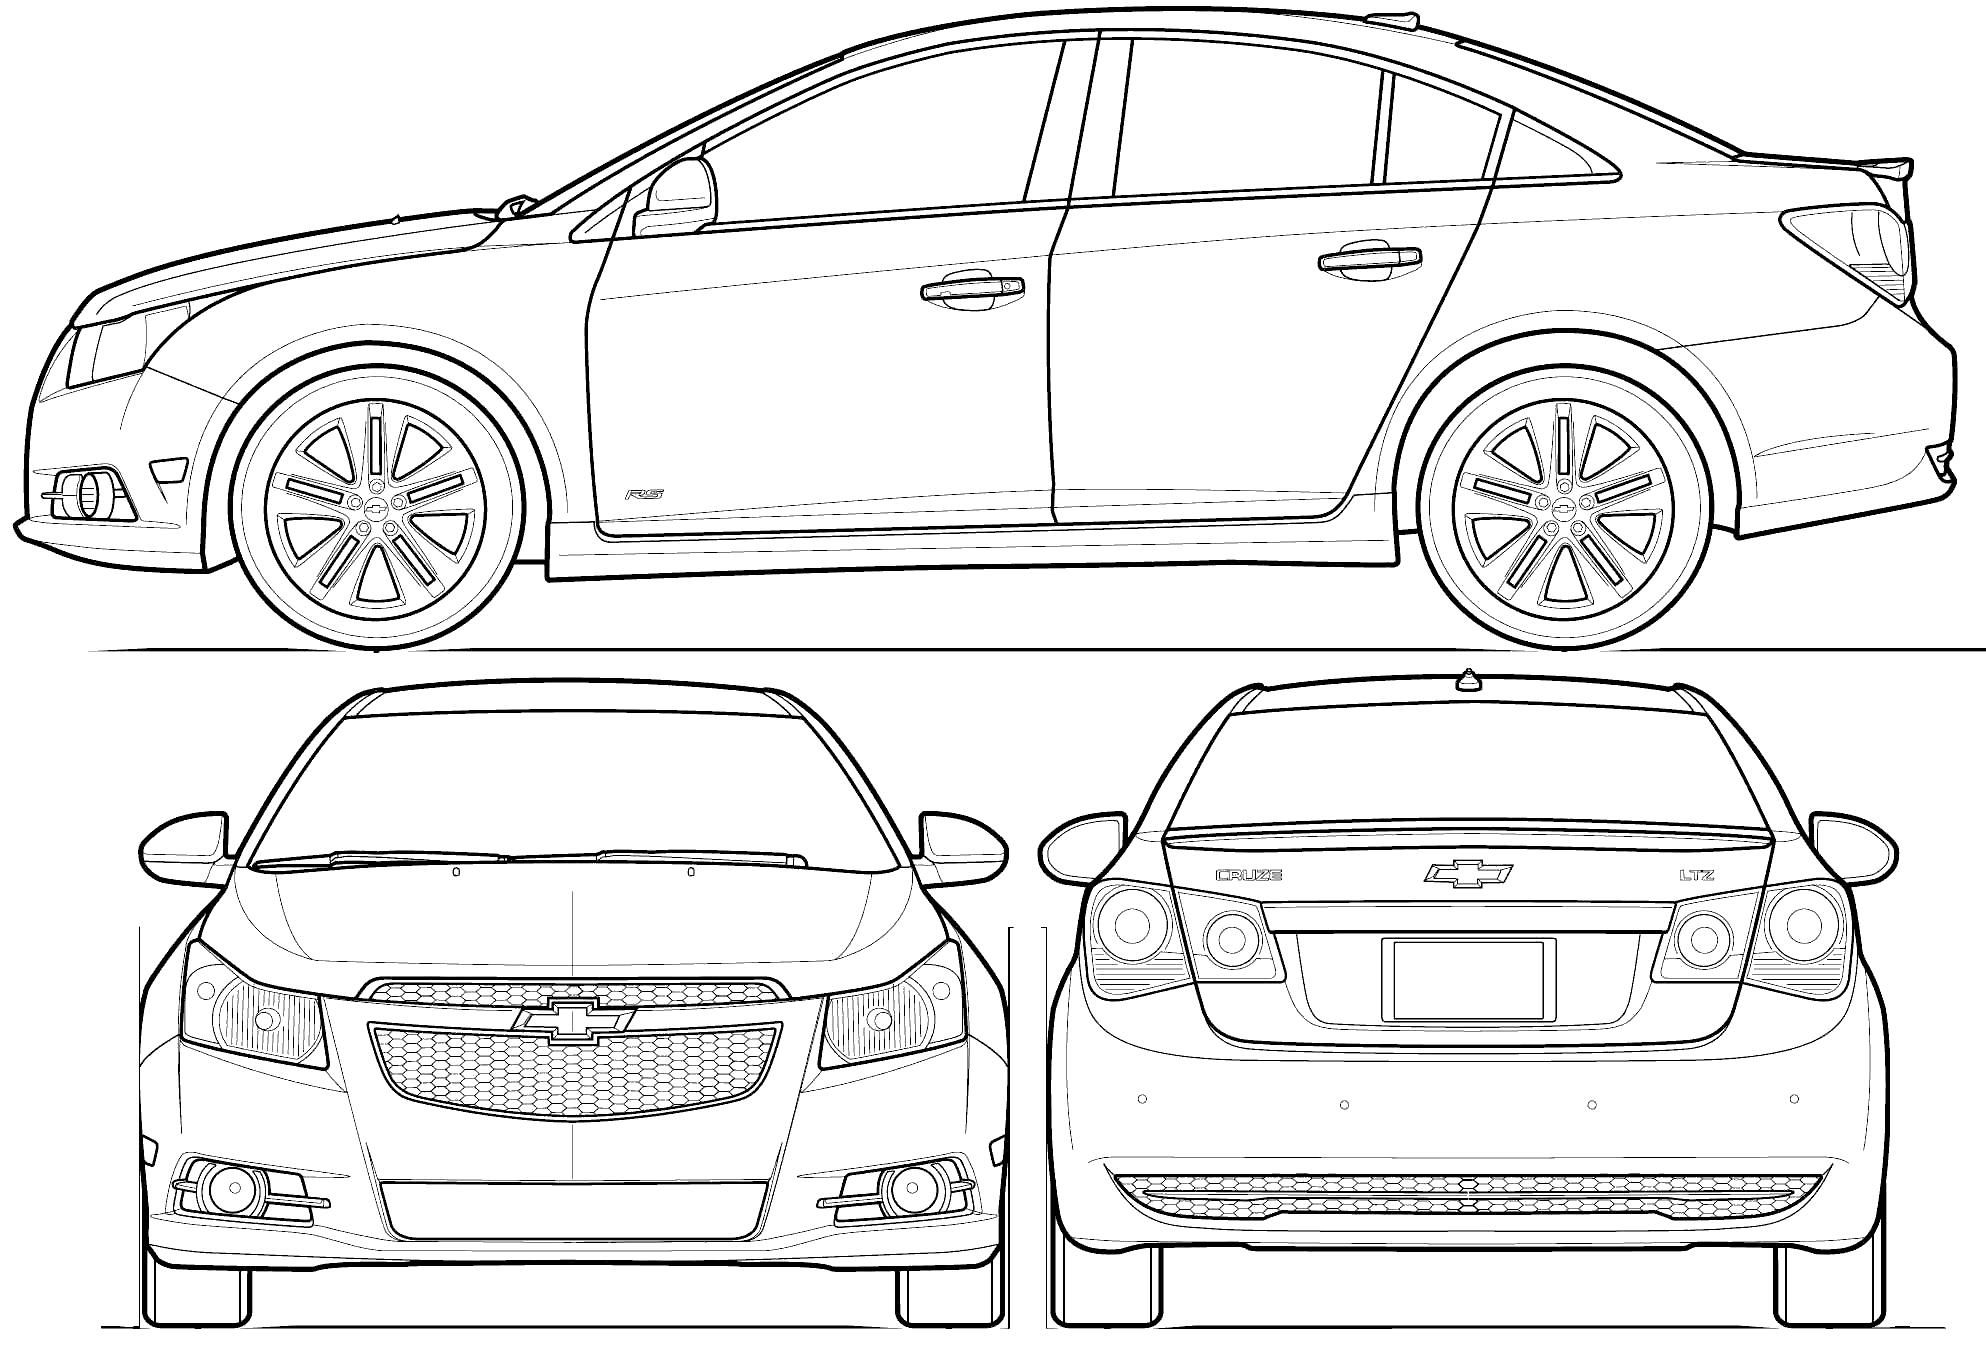 Blueprints Chevrolet Cruze Model Sheet